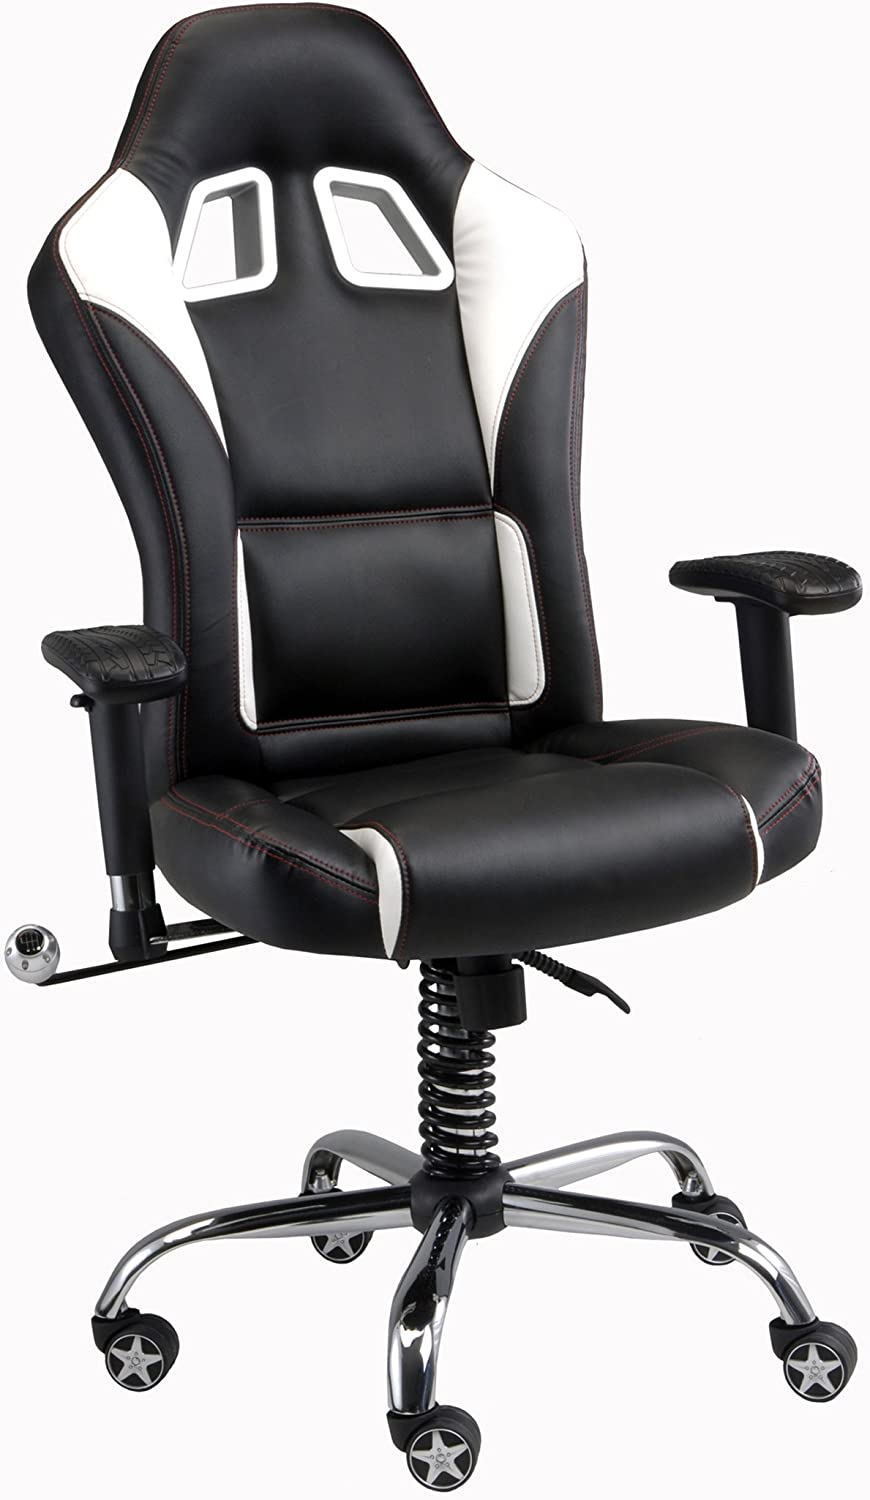 Pitstop Furniture IN1100B Black SE Office Chair